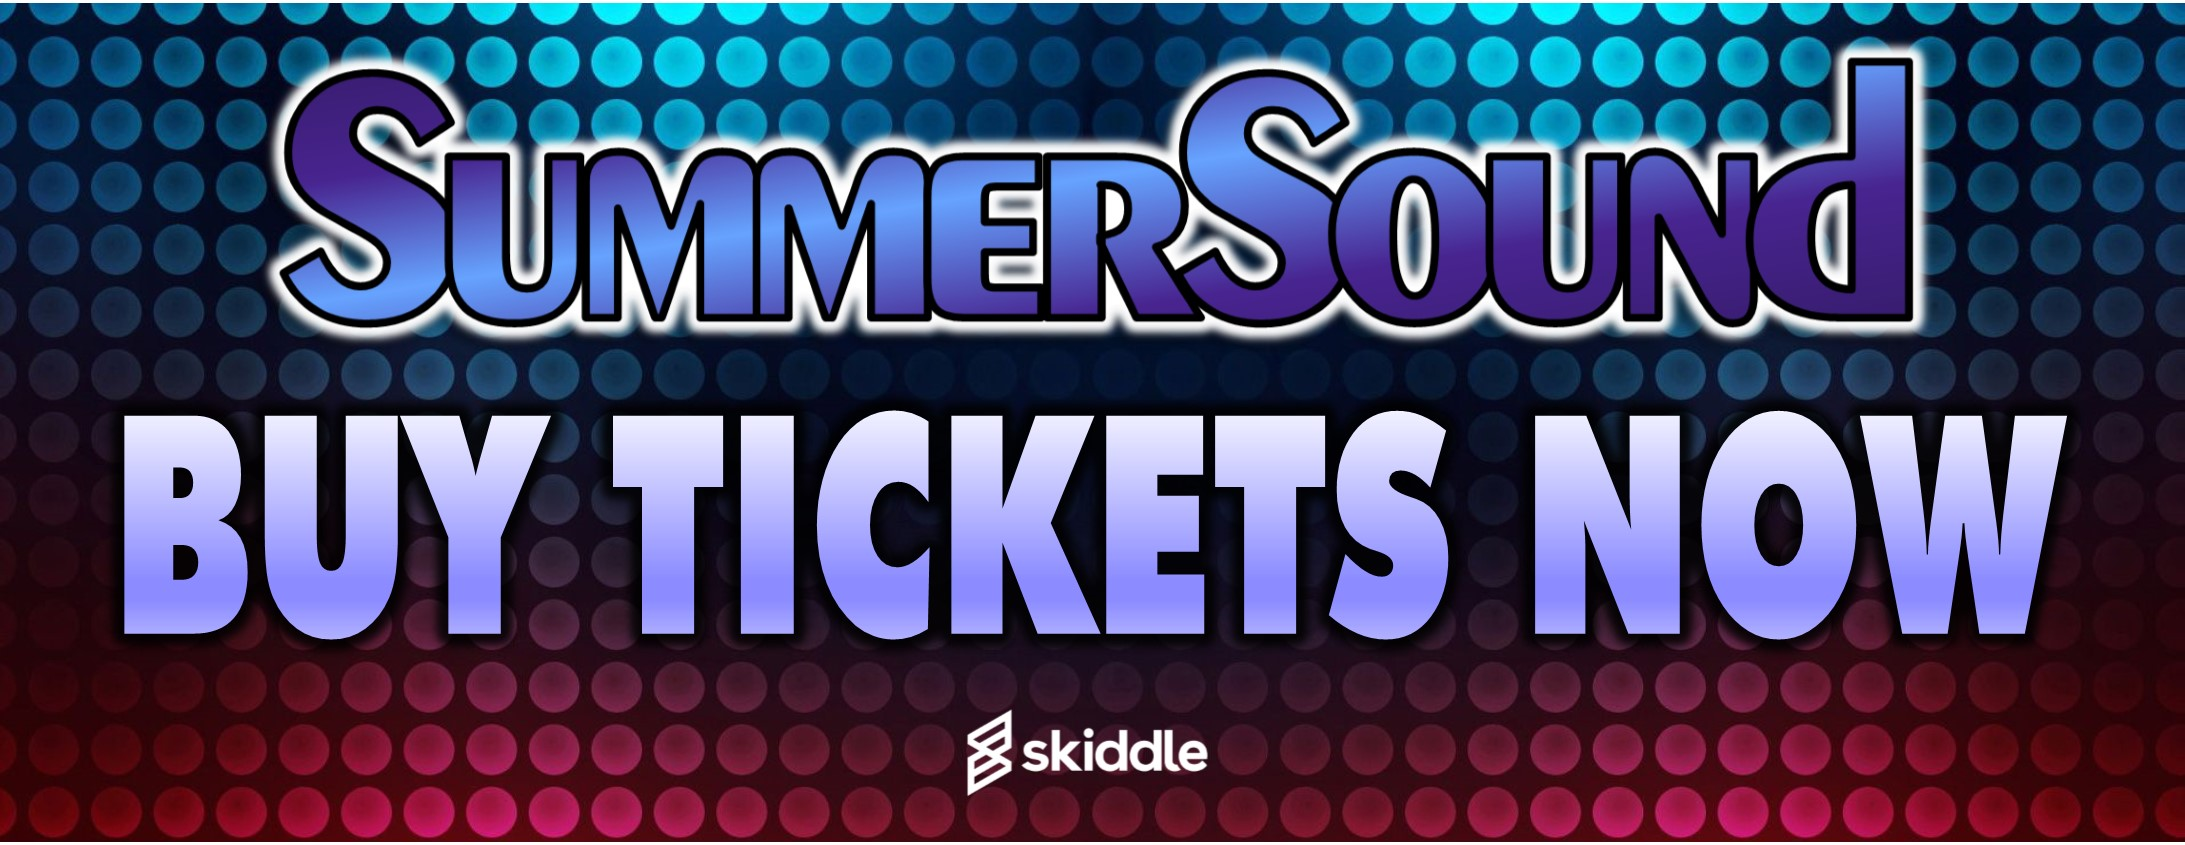 Banner - Summer Sound Tickets